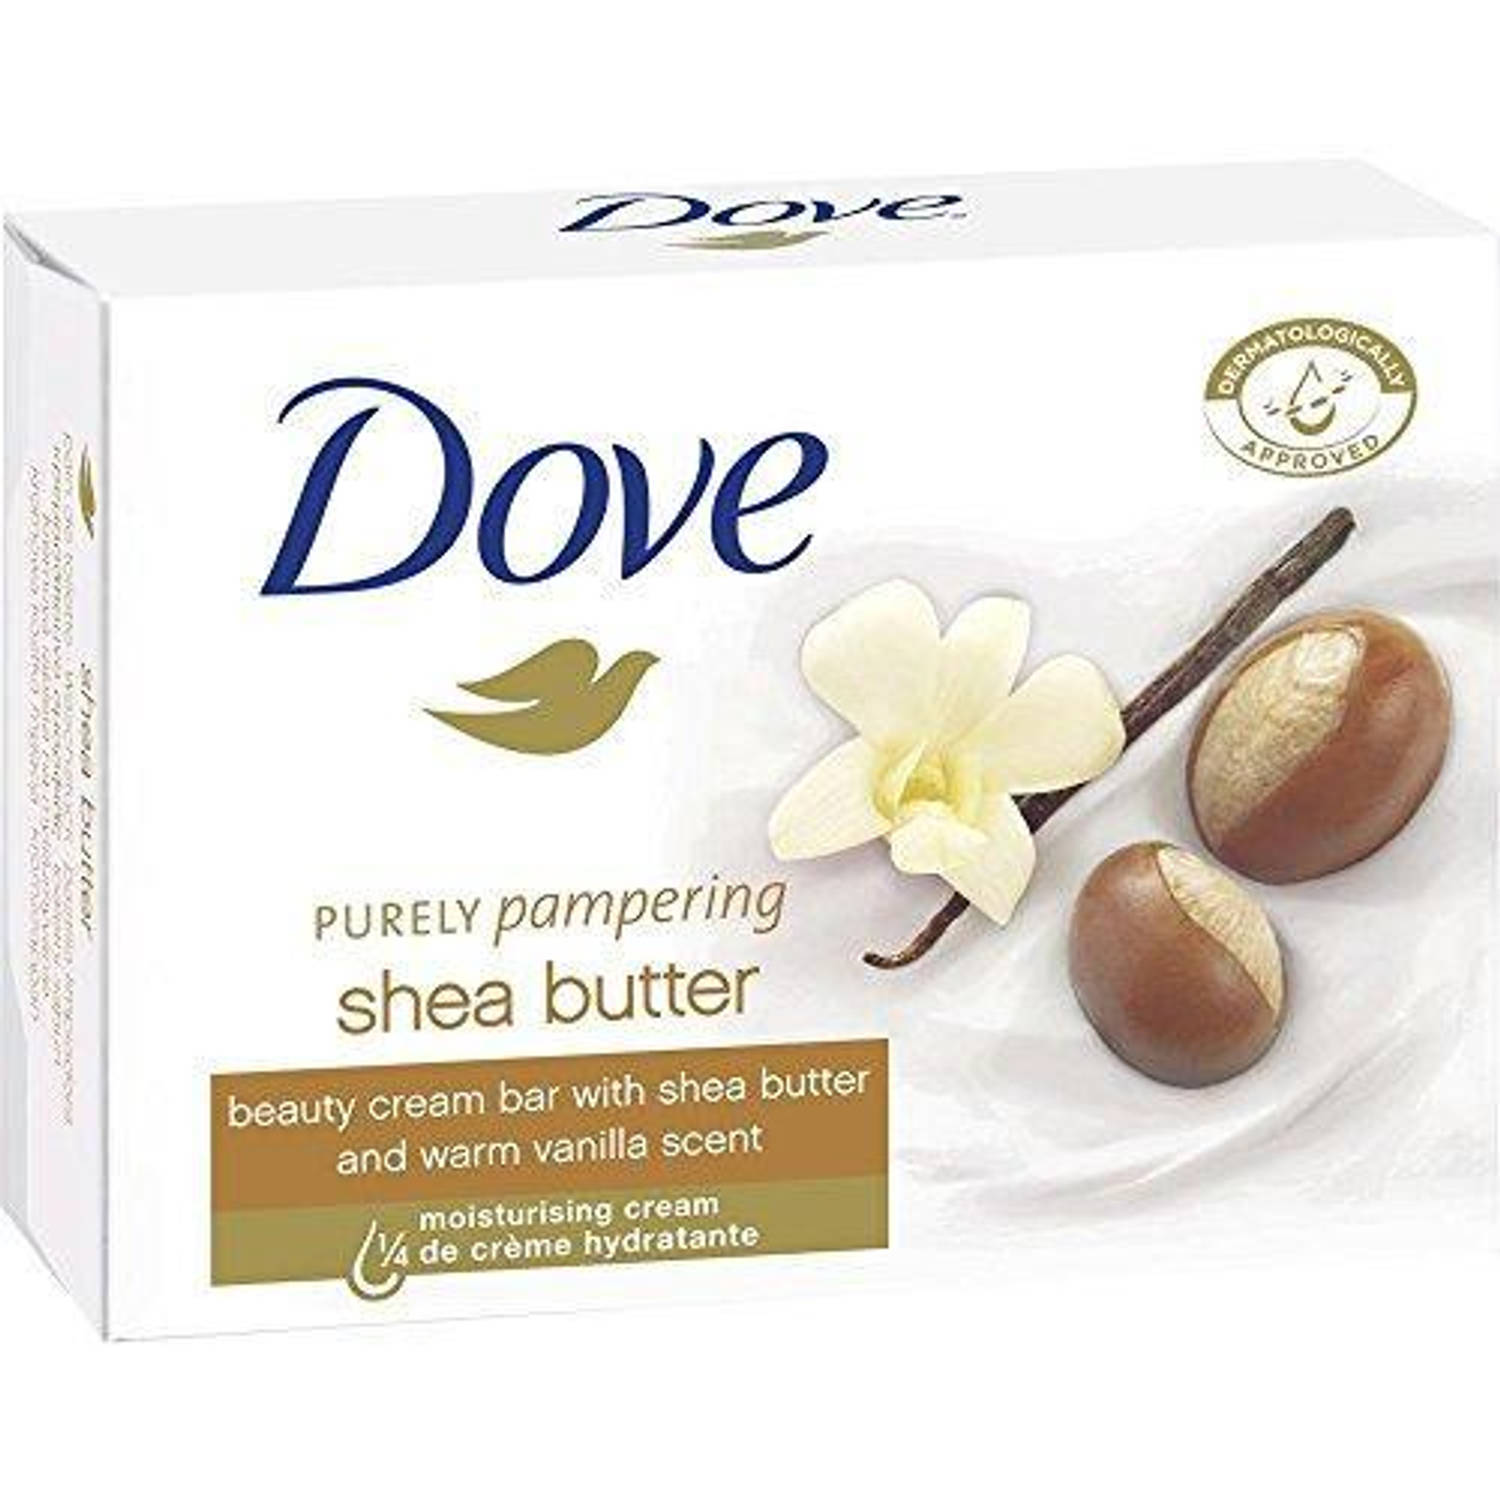 Dove Purely Pampering Shea Butter- 100g